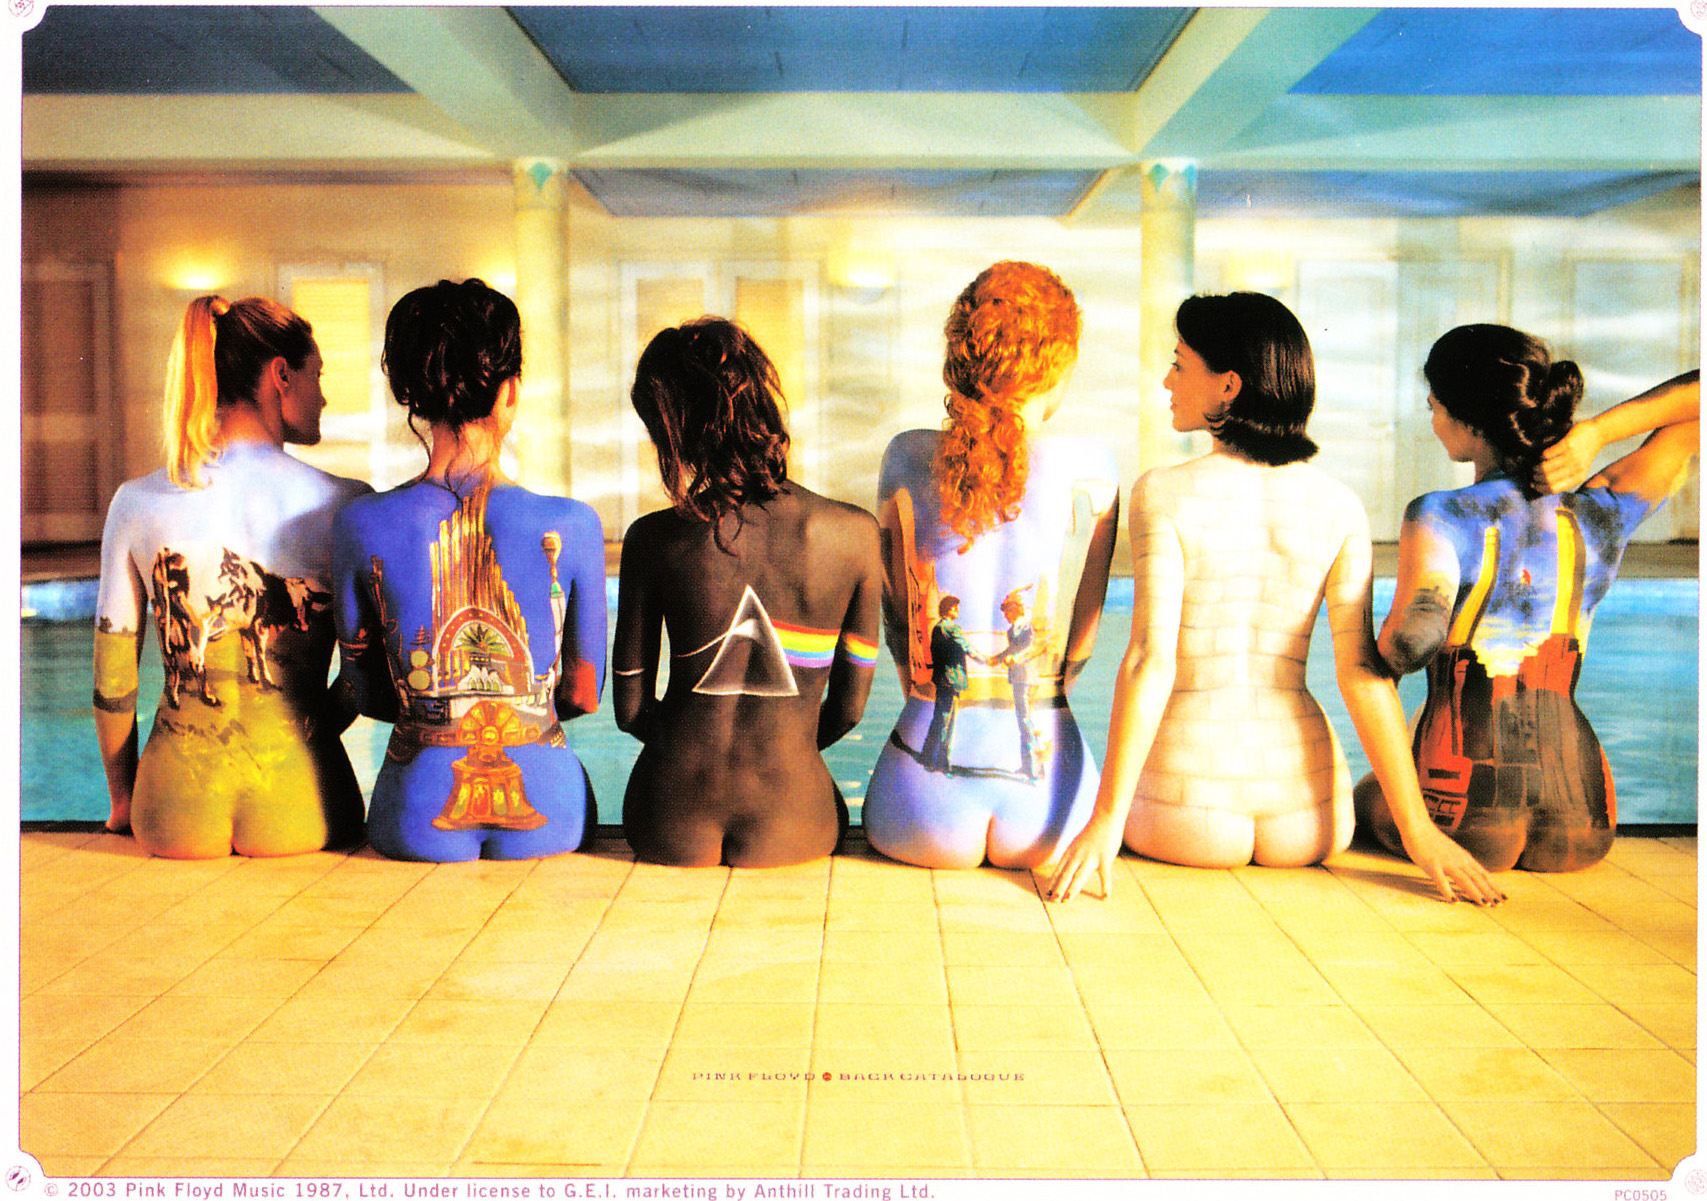 Outstanding Pink Floyd The Wall Cover Art Model - Art & Wall Decor ...